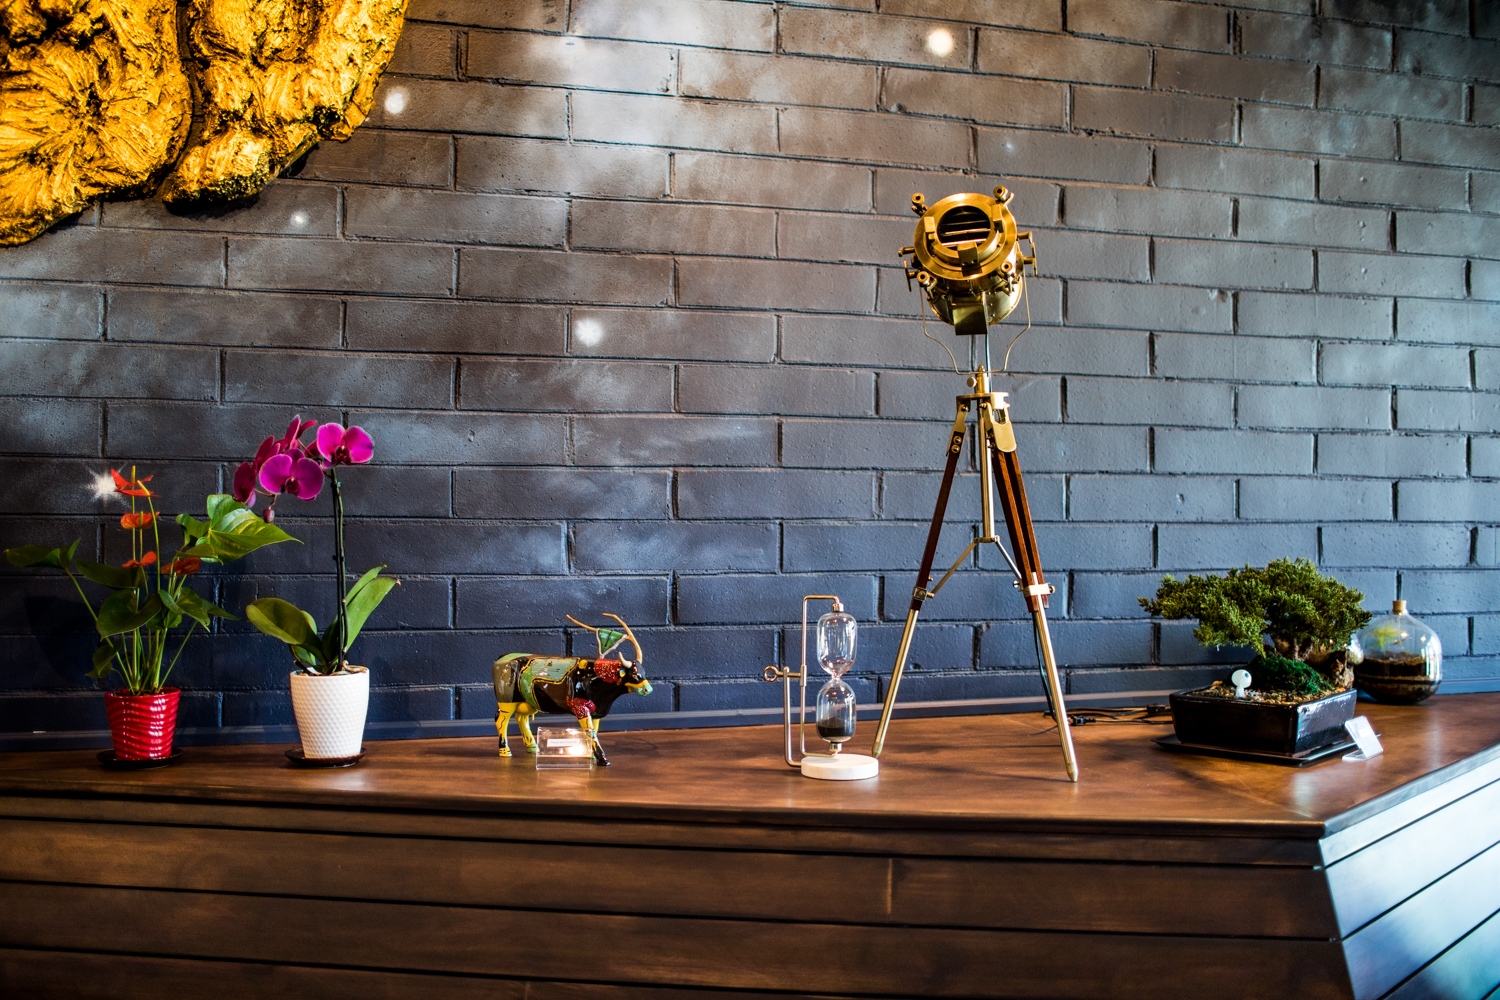 Design elements at Alchemist Trading Co. How beautiful is that golden telescope?